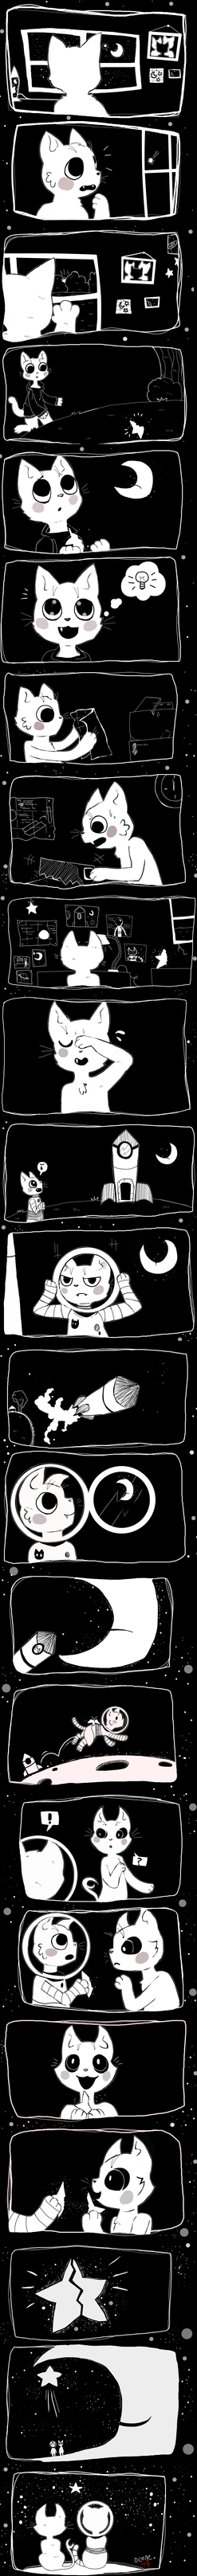 Space Cats by Ocene